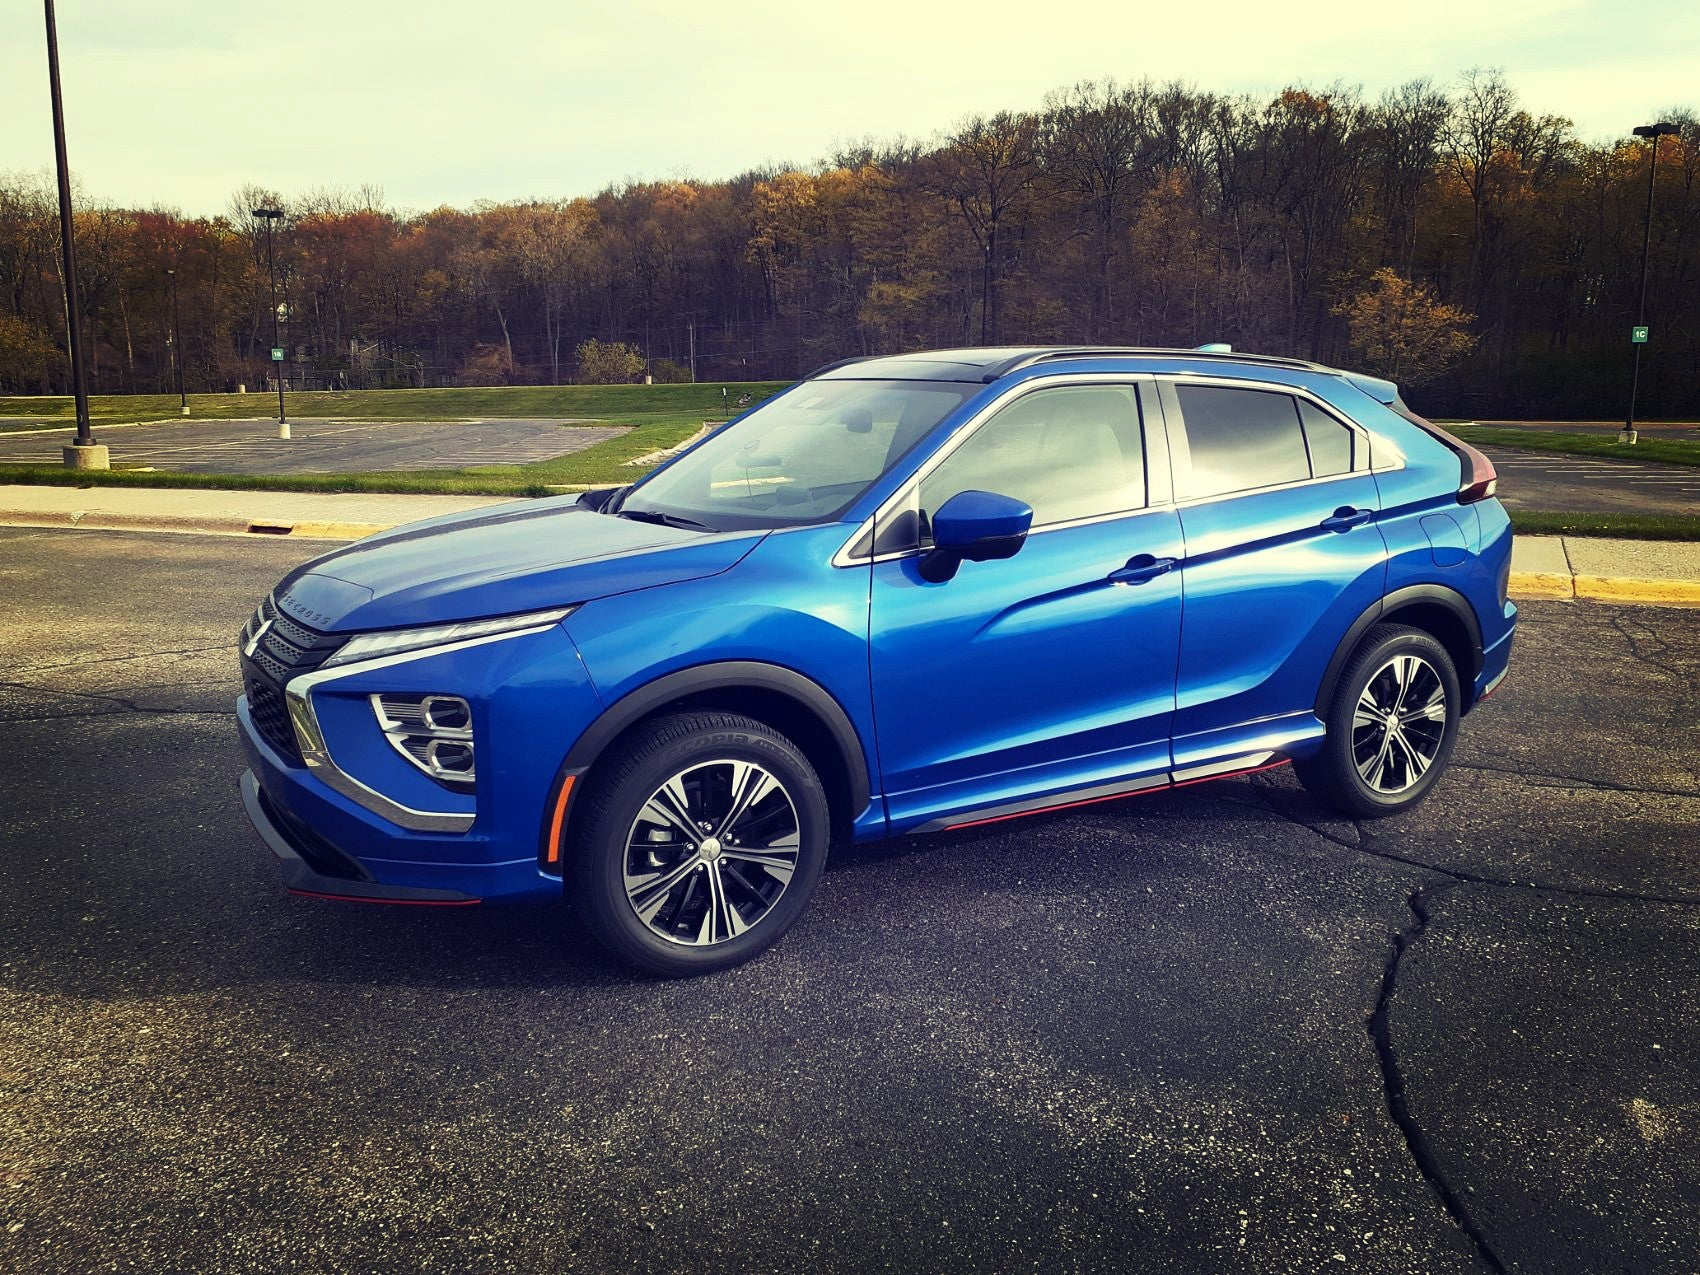 2022 Mitsubishi Eclipse Cross Review: Stylish & Affordable But Should You Buy It?